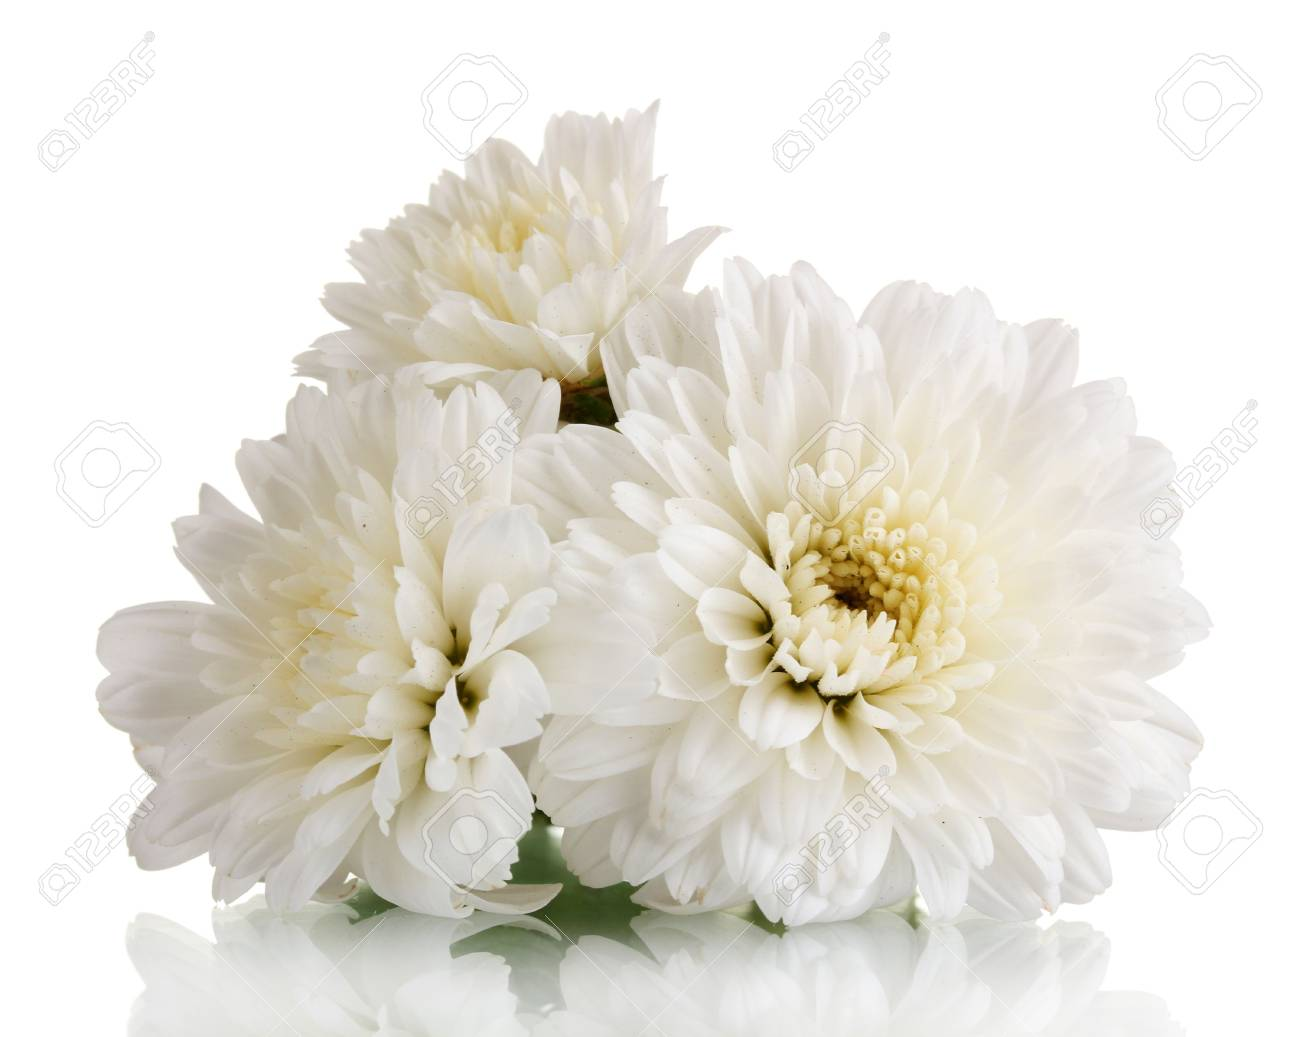 White chrysanthemums flowers isolated on white stock photo picture white chrysanthemums flowers isolated on white stock photo 11169174 mightylinksfo